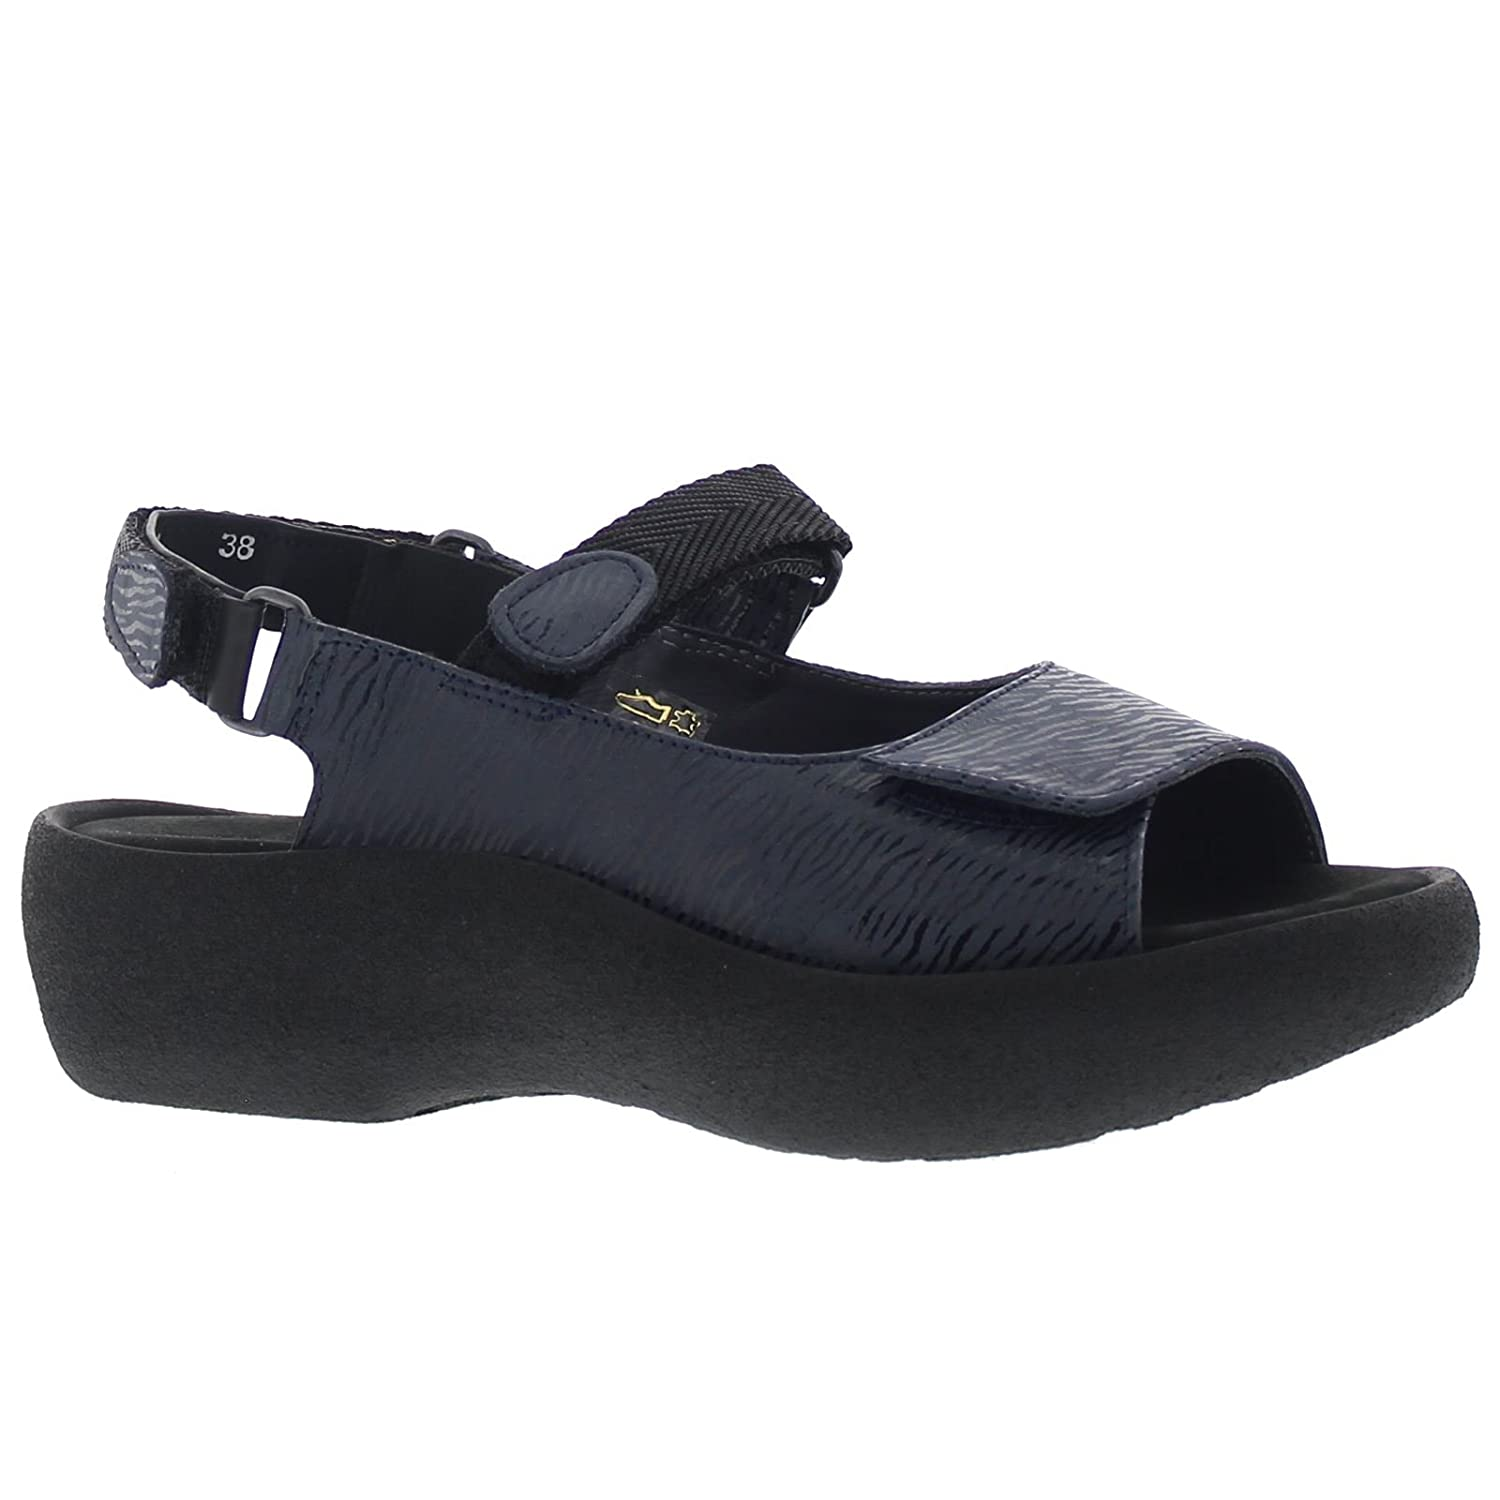 Wolky Comfort Jewel B01LWYW6ZD 38 M EU / 6.5-7 B(M) US|Denim Blue